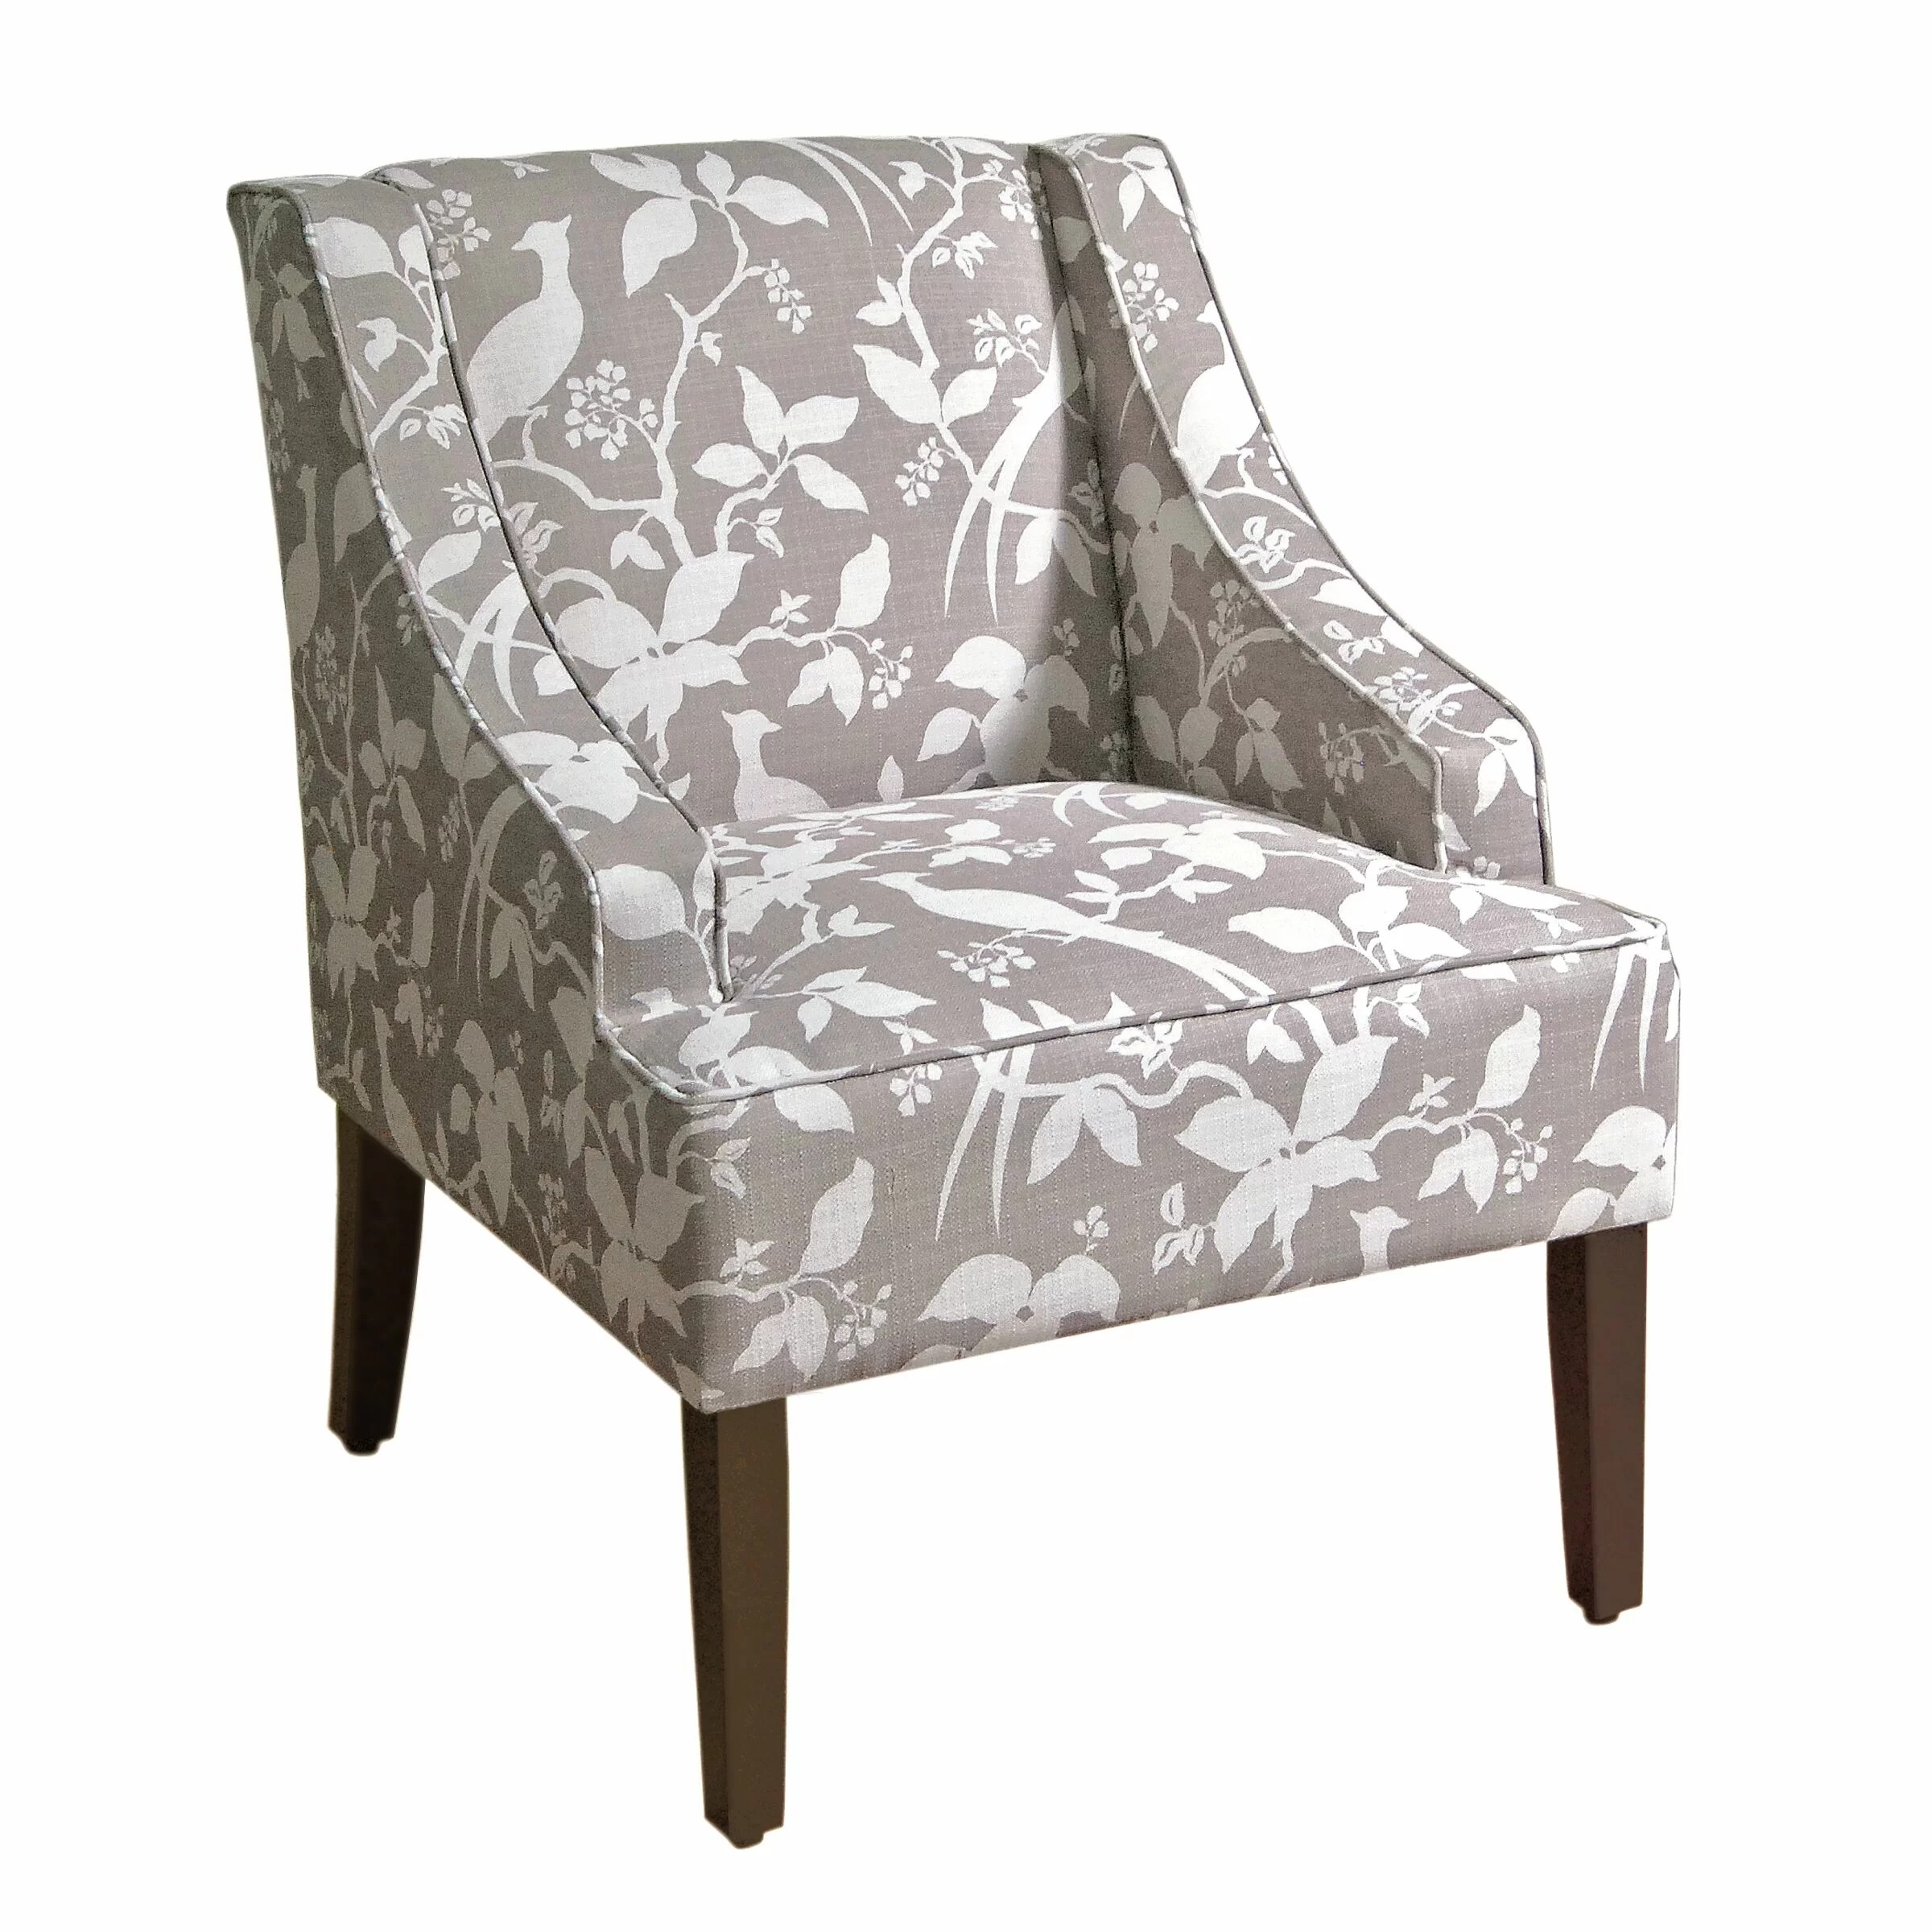 Armed Accent Chairs Laurel Foundry Modern Farmhouse Annette Accent Arm Chair